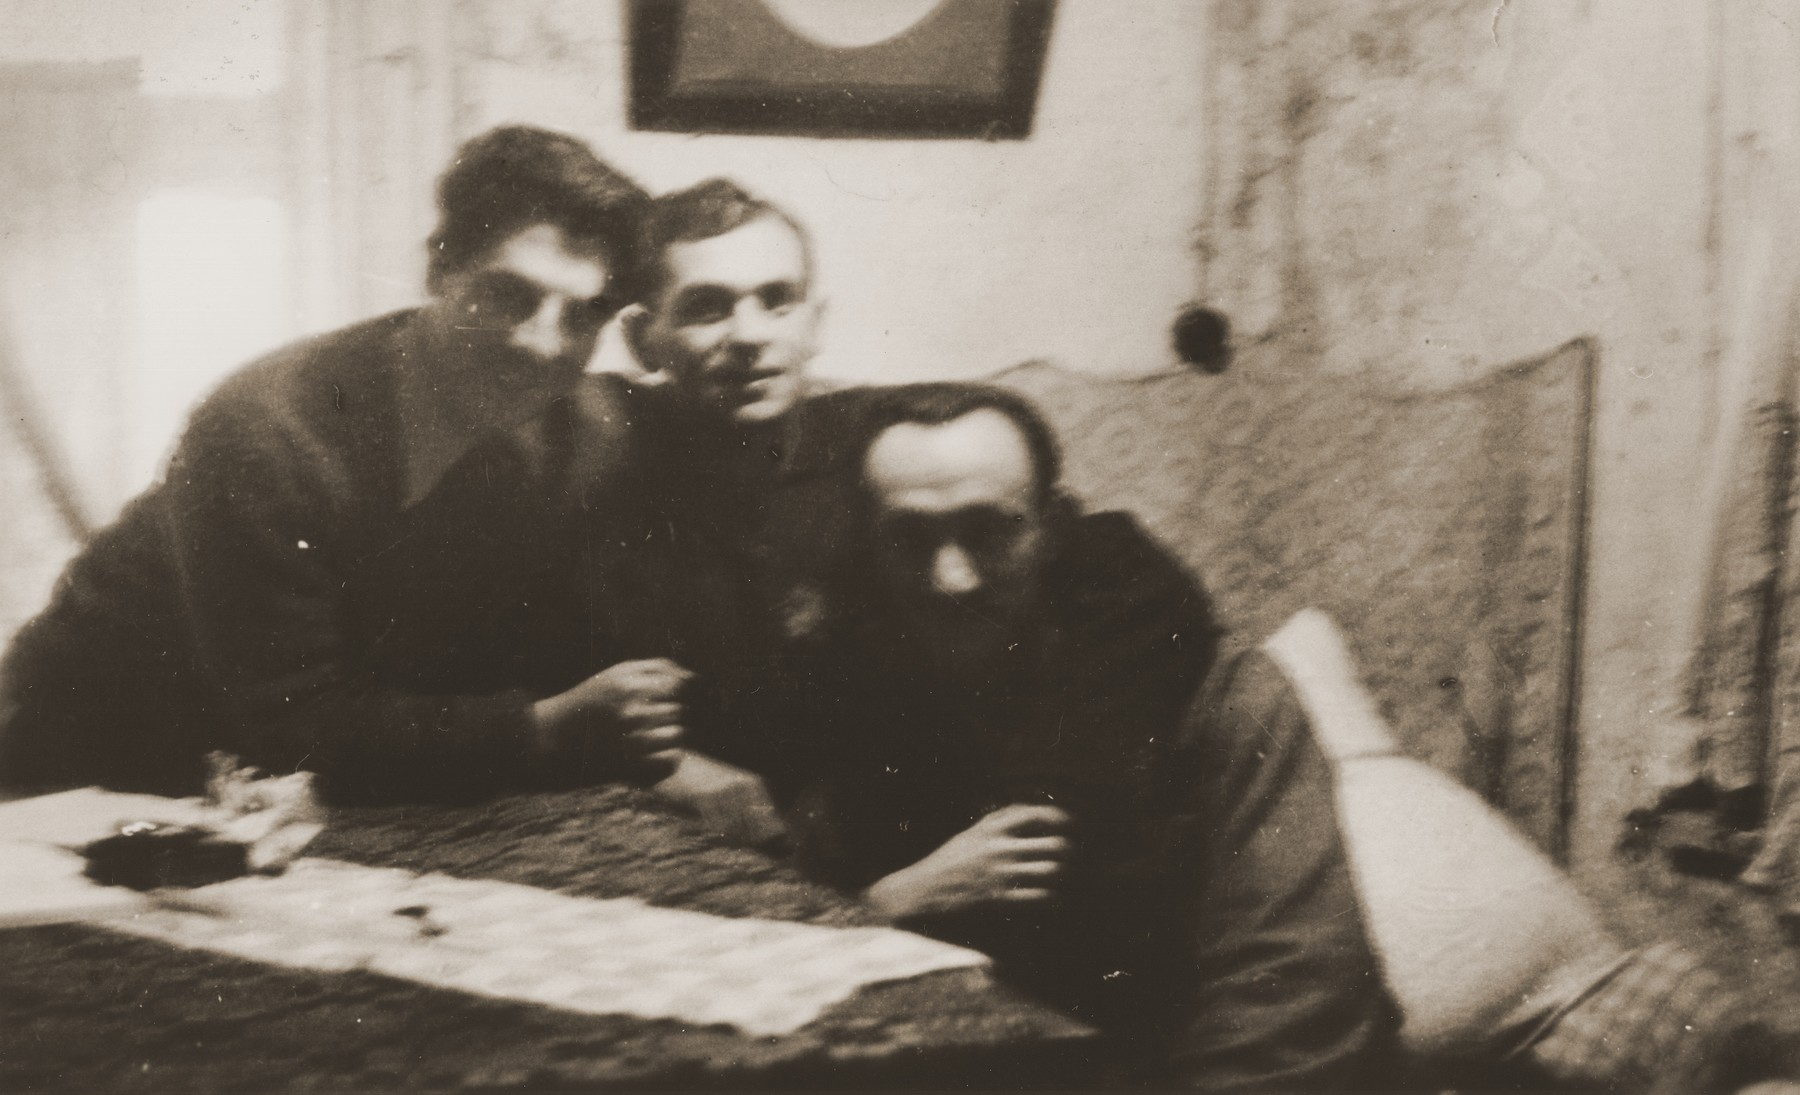 Three members of the Jewish General Fighting Organization in the Kovno ghetto.  Pictured are Chaim Yellin, leader of the Kovno ghetto underground, and two of his deputies, Moshe Musel and David Ratner.  Ratner, a professional photographer before the war, took pictures in the ghetto for the underground.